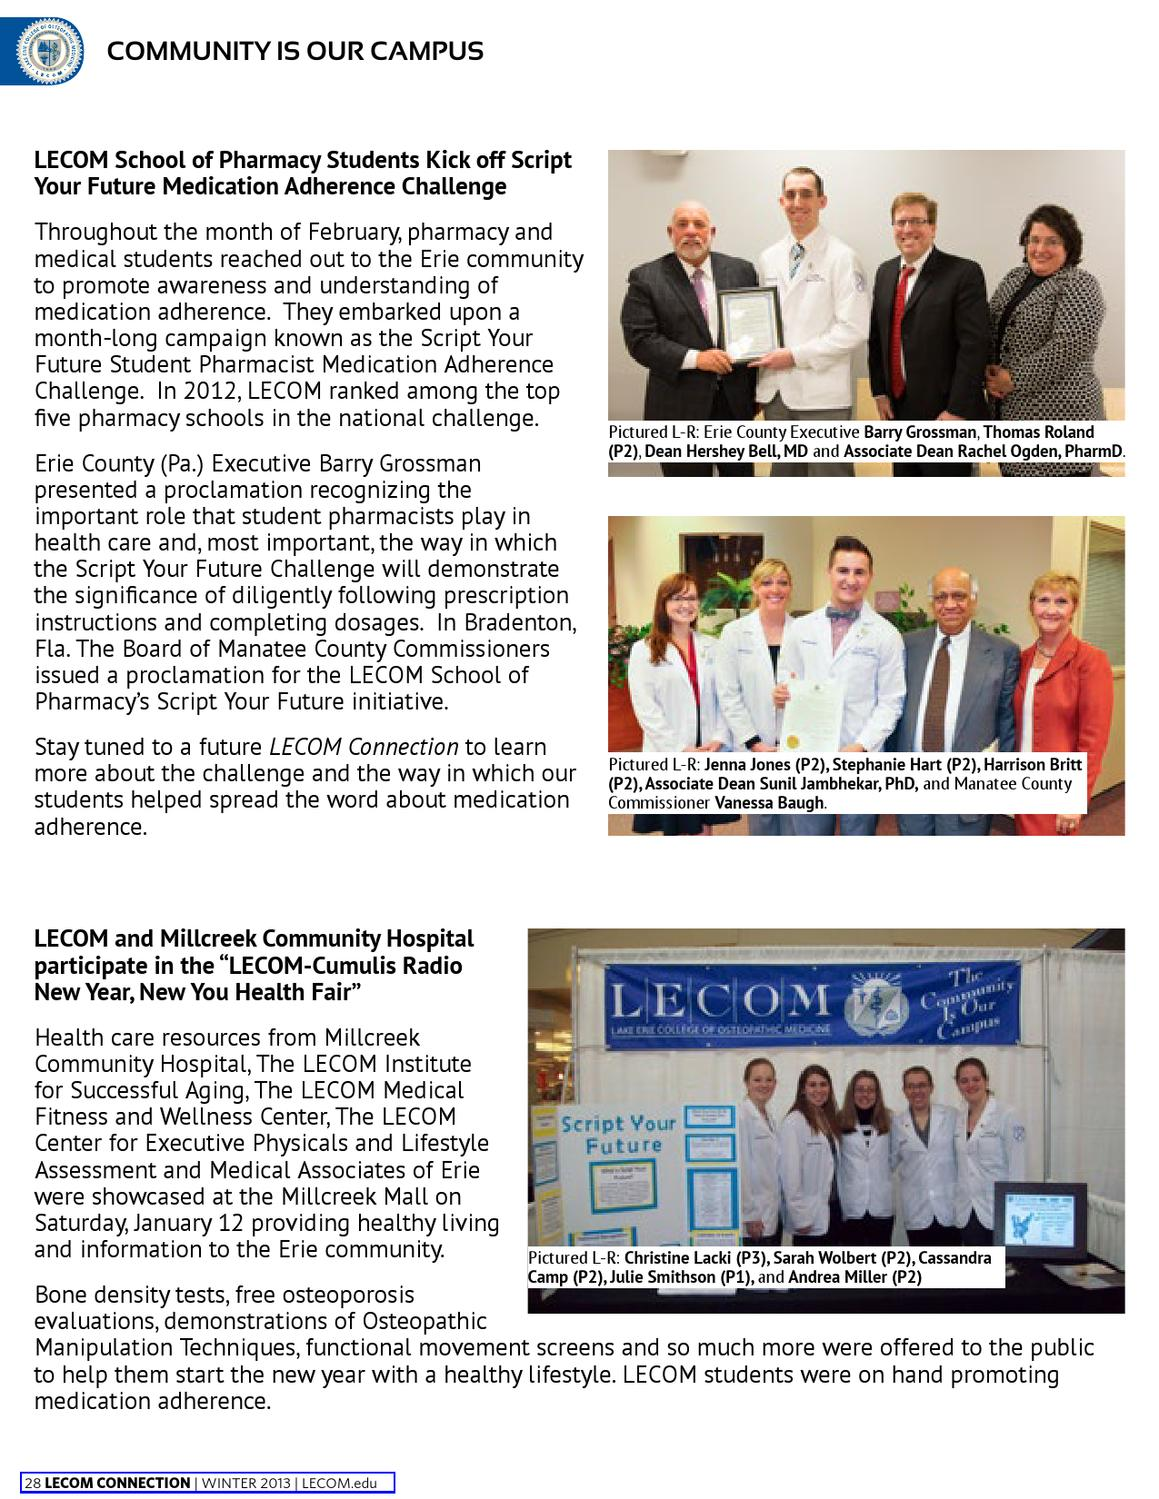 LECOM Connection Winter 2013 by Lake Erie College of